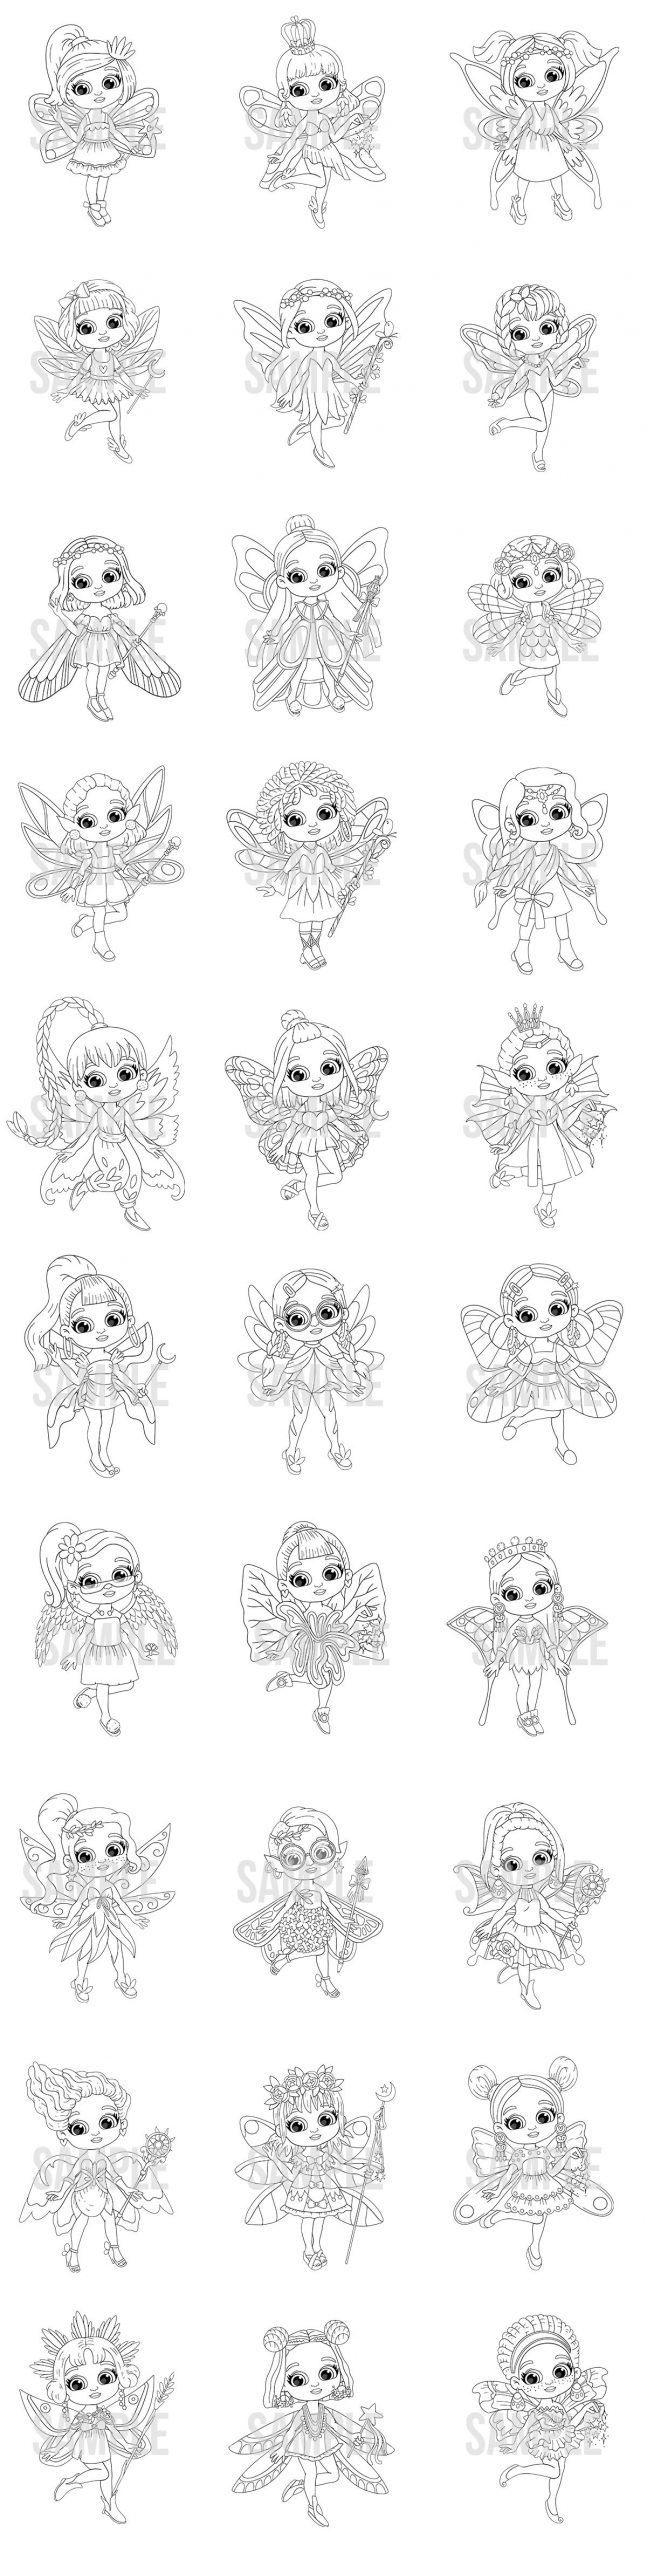 LCB-Dress-Your-Fairy-Coloring-Pack-Samples